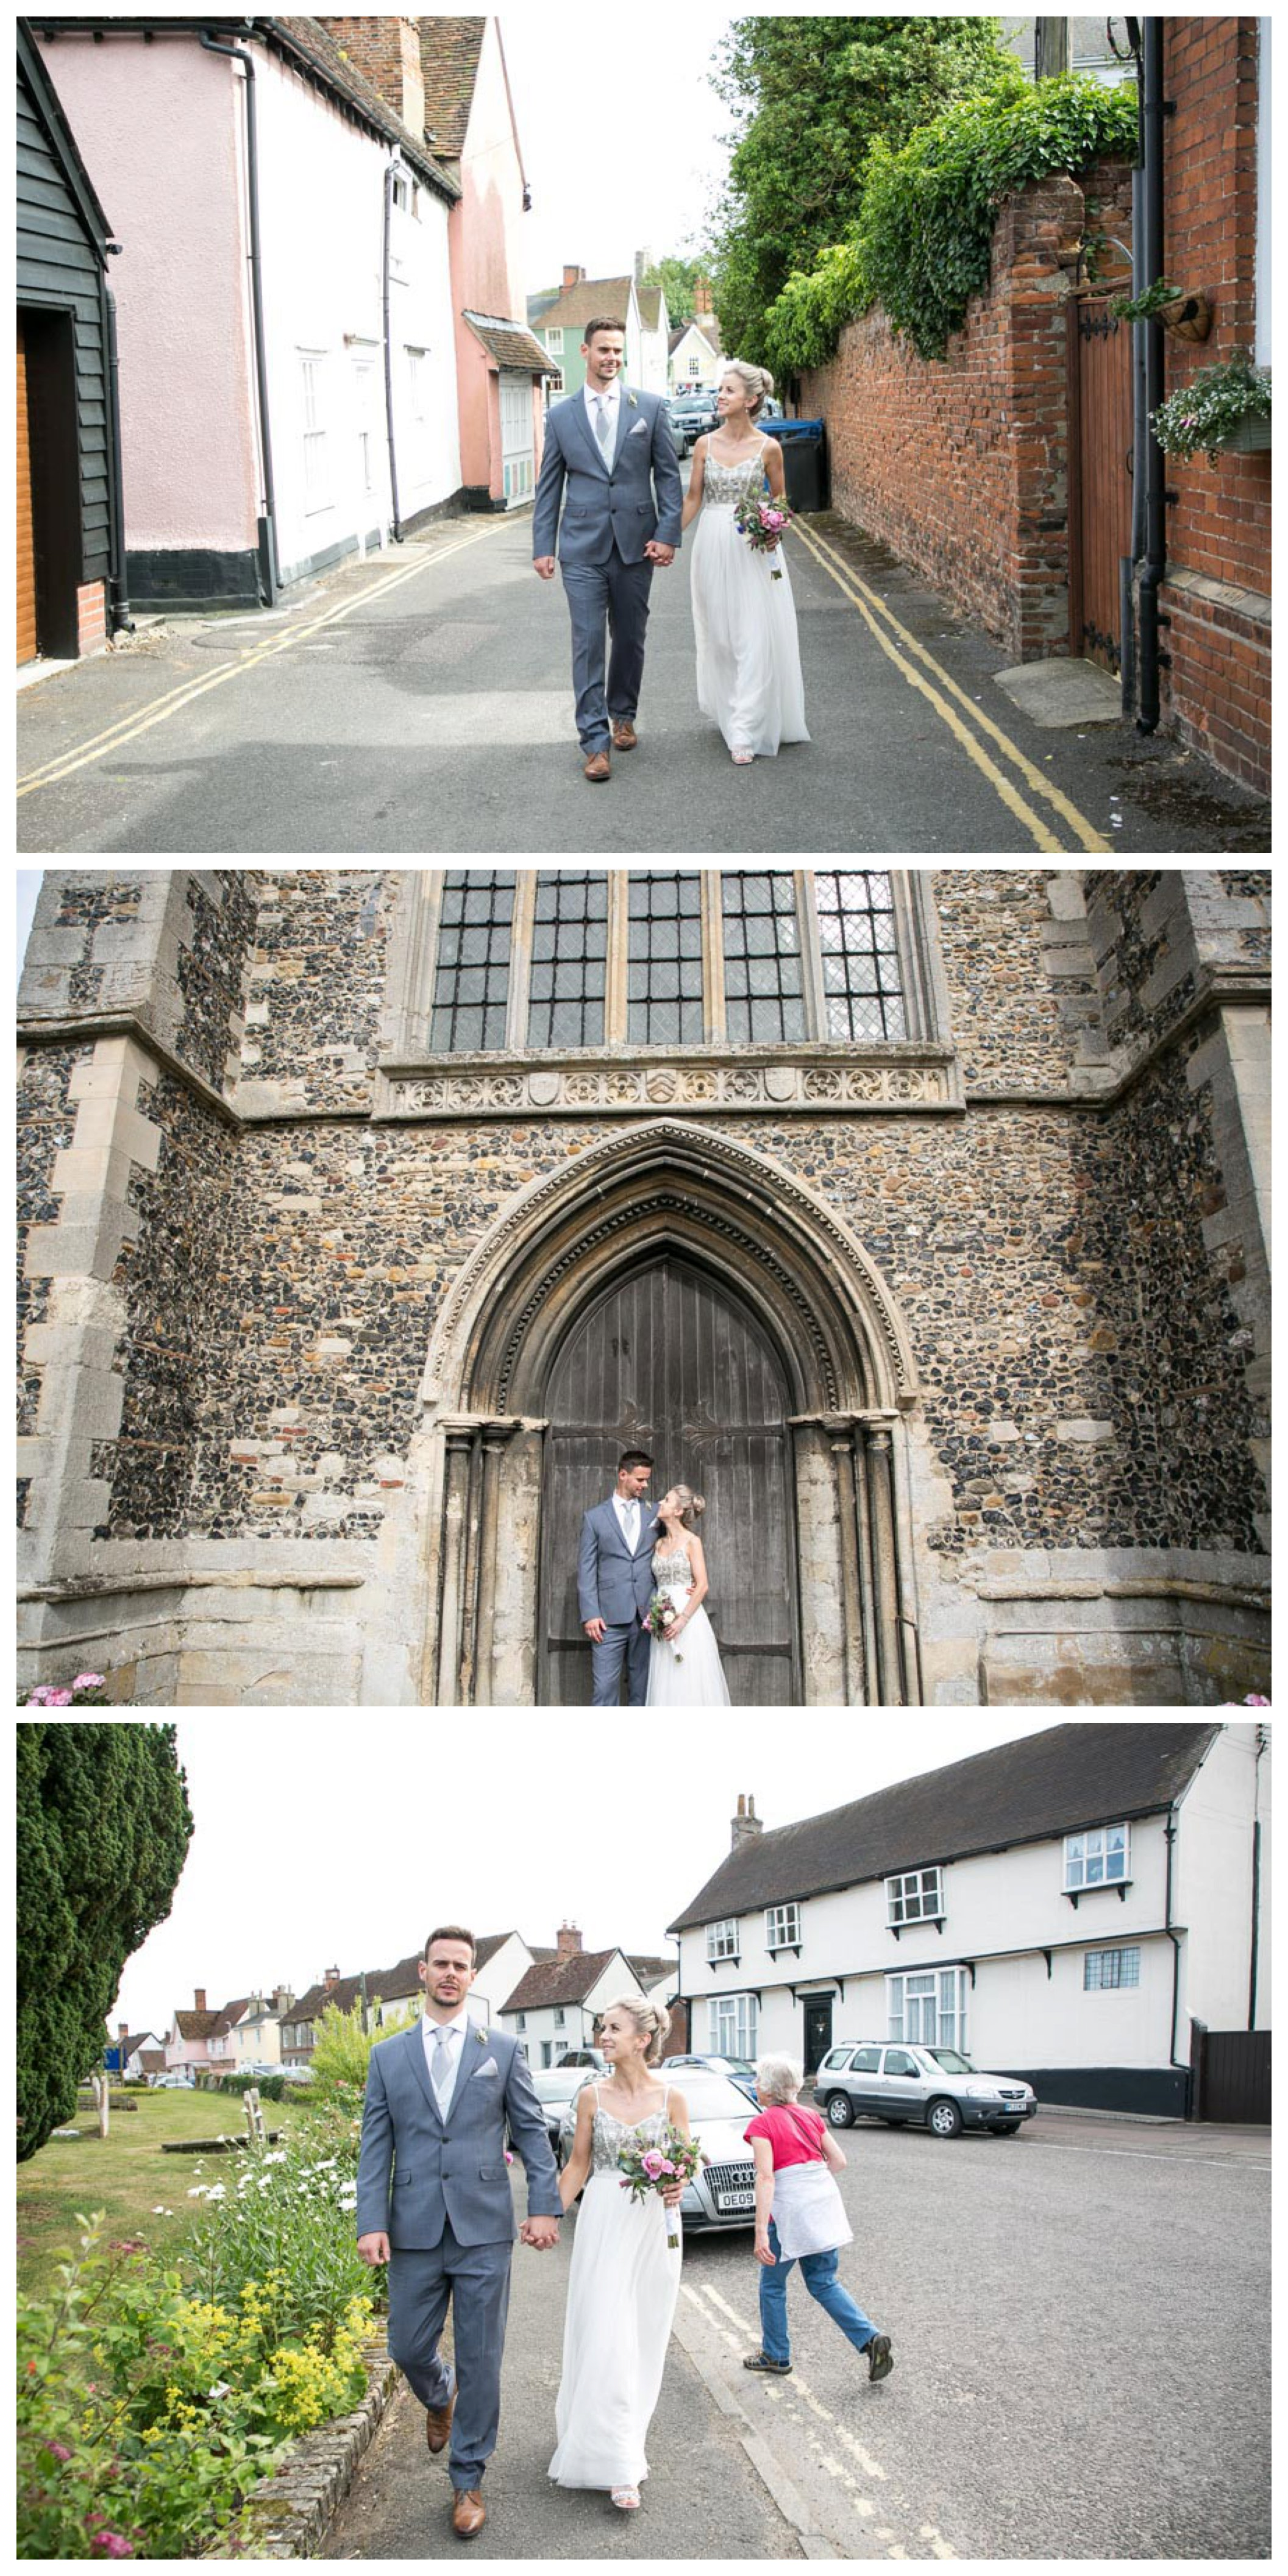 bride and groom walking along street, and stanging in church doorway